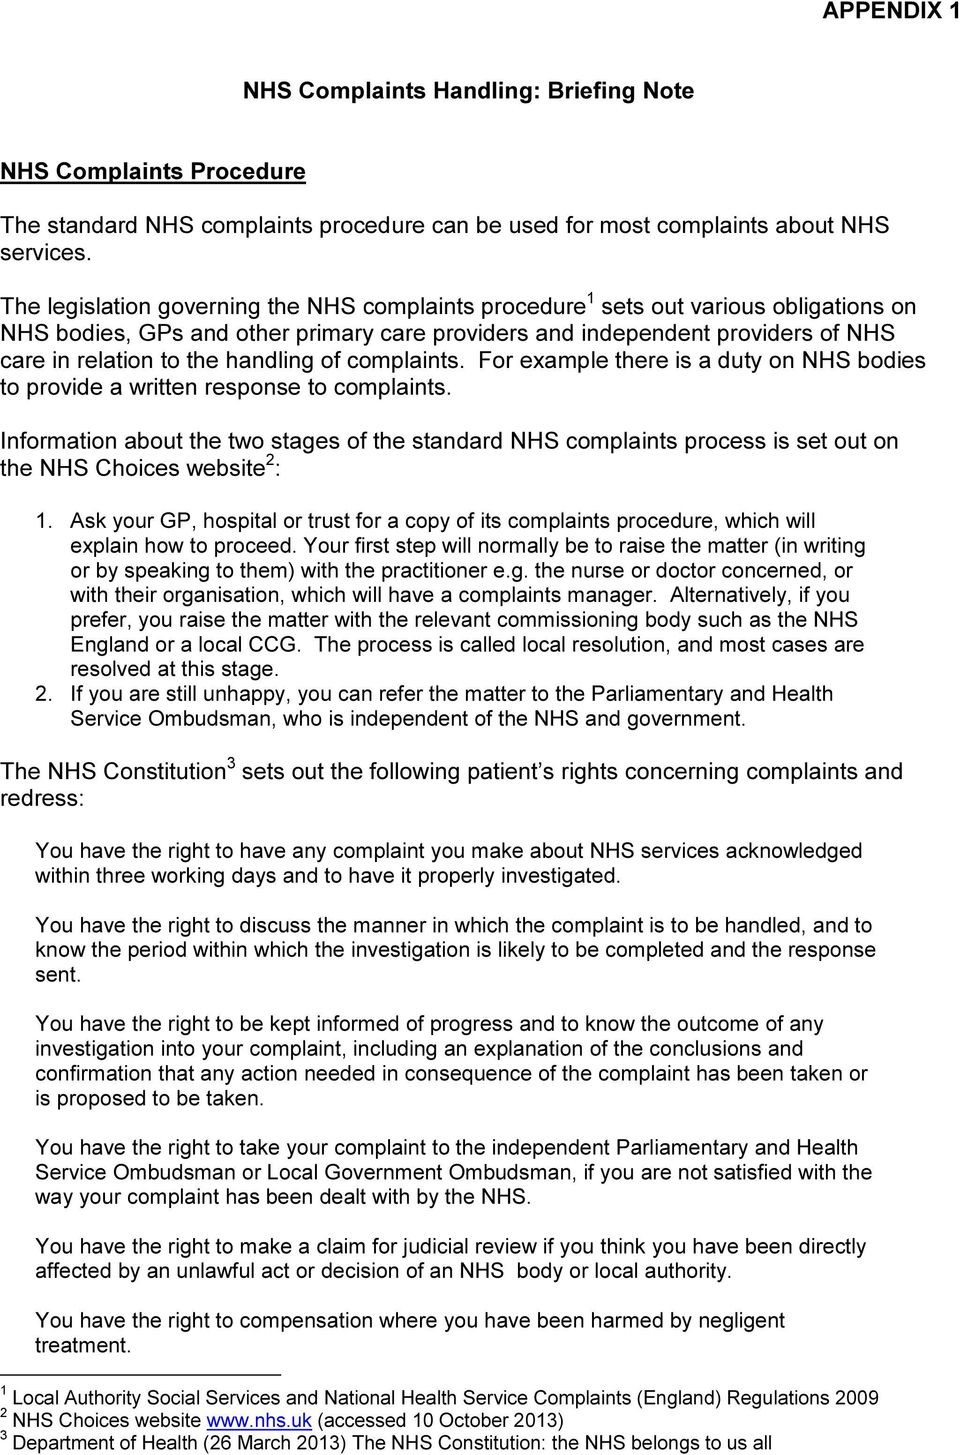 handling of complaints. For example there is a duty on NHS bodies to provide a written response to complaints.